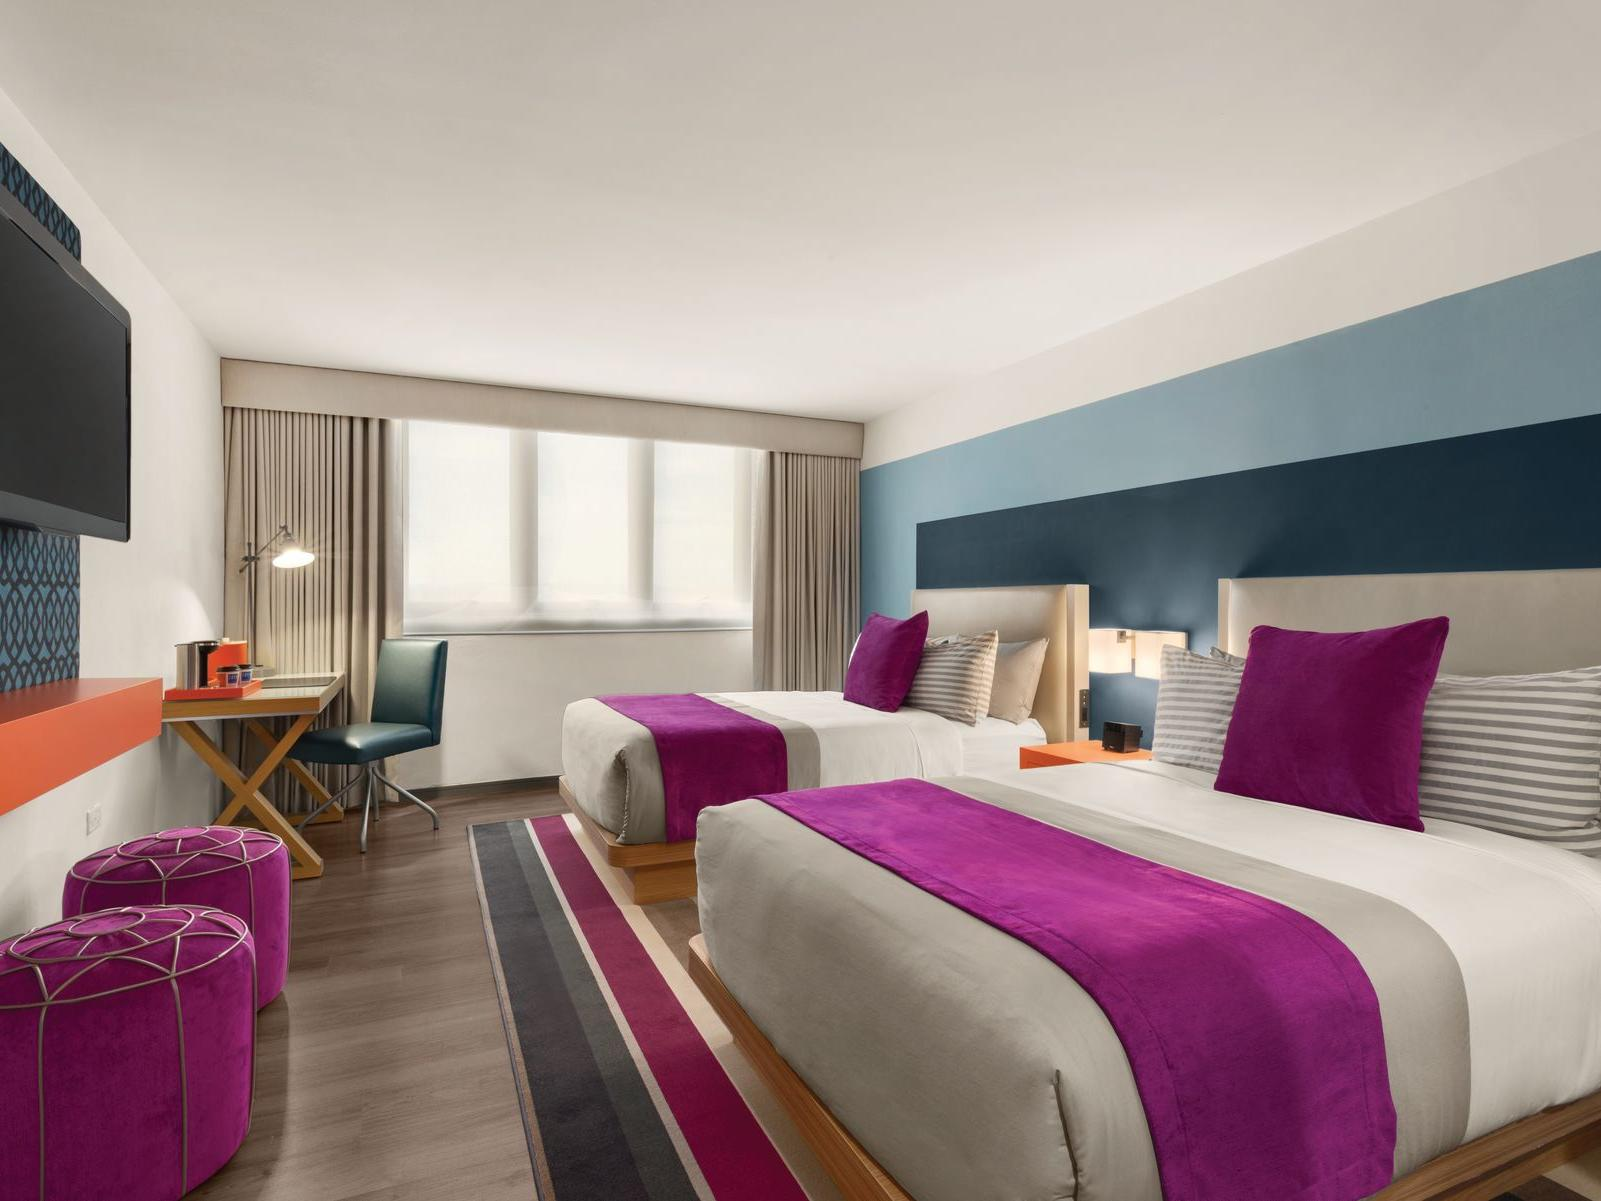 TRYP by Wyndham Isla Verde hotel room with two double beds, desk and television on wall